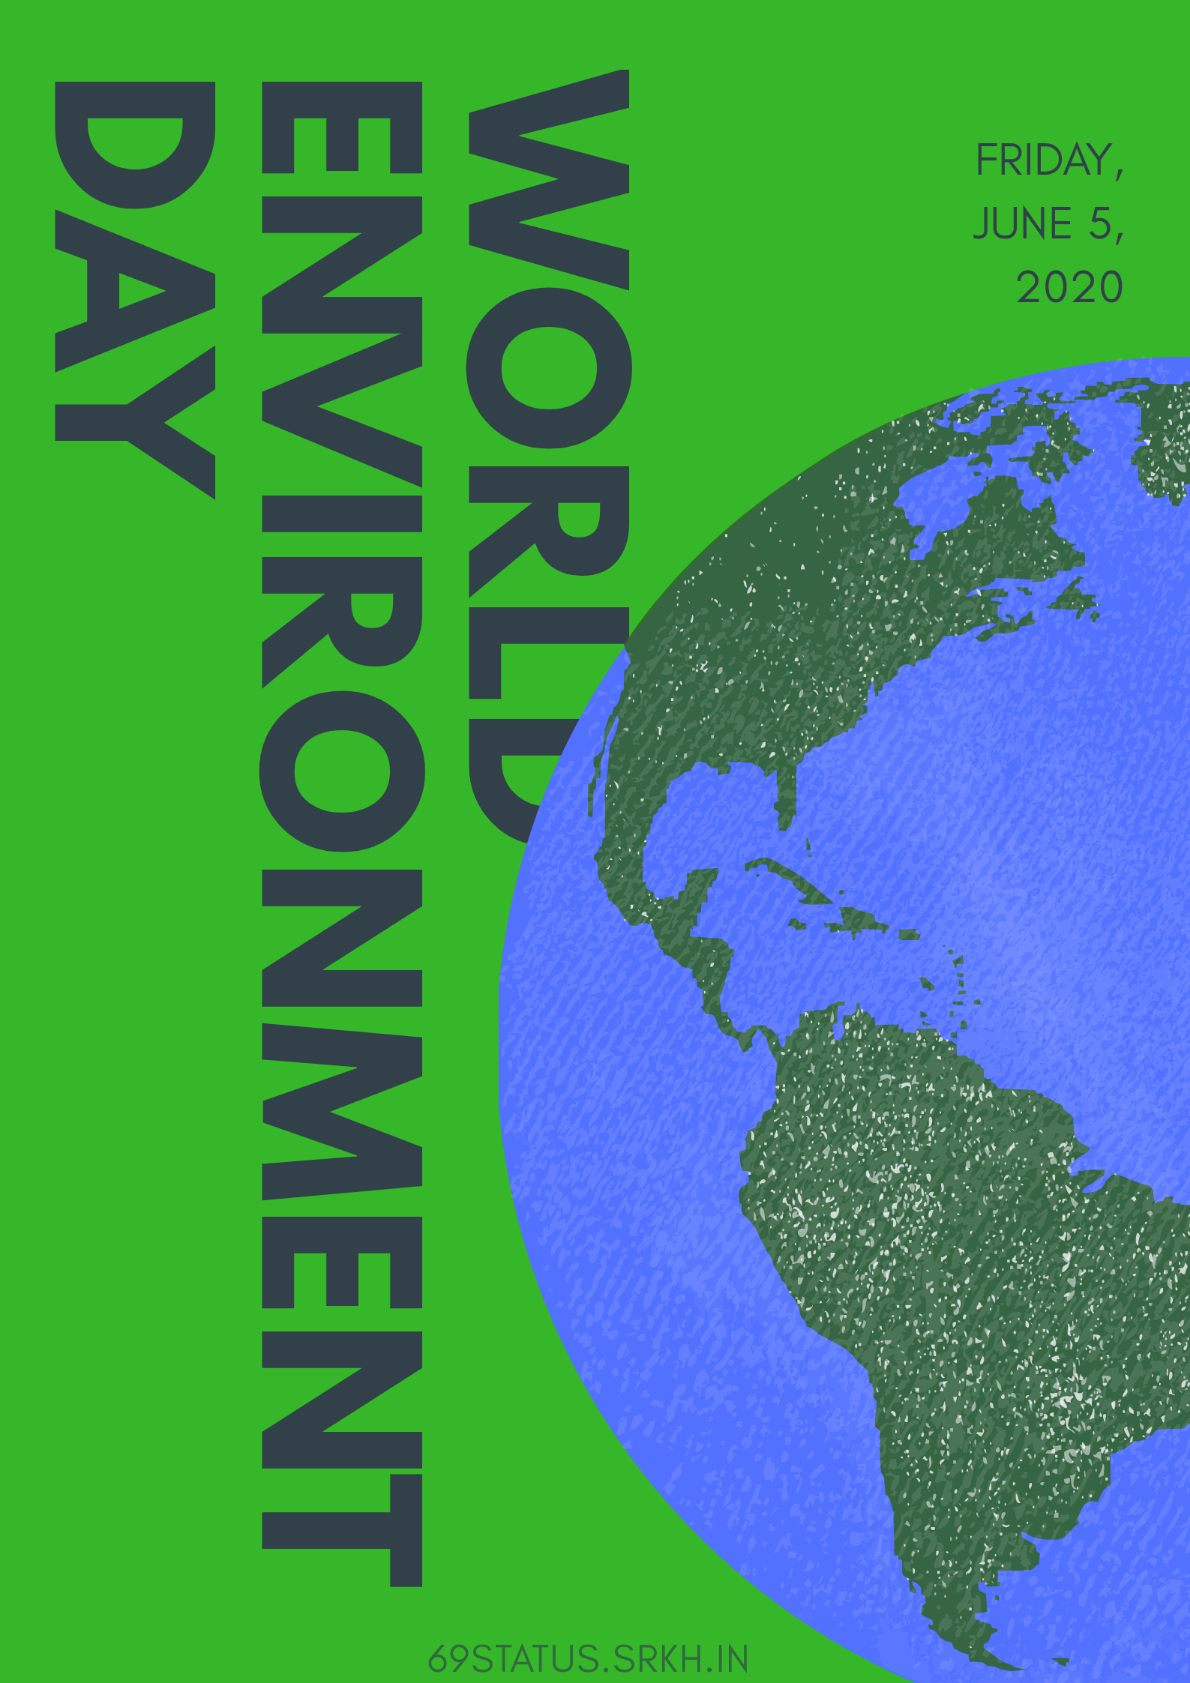 World Environment Day Poster Images HD full HD free download.